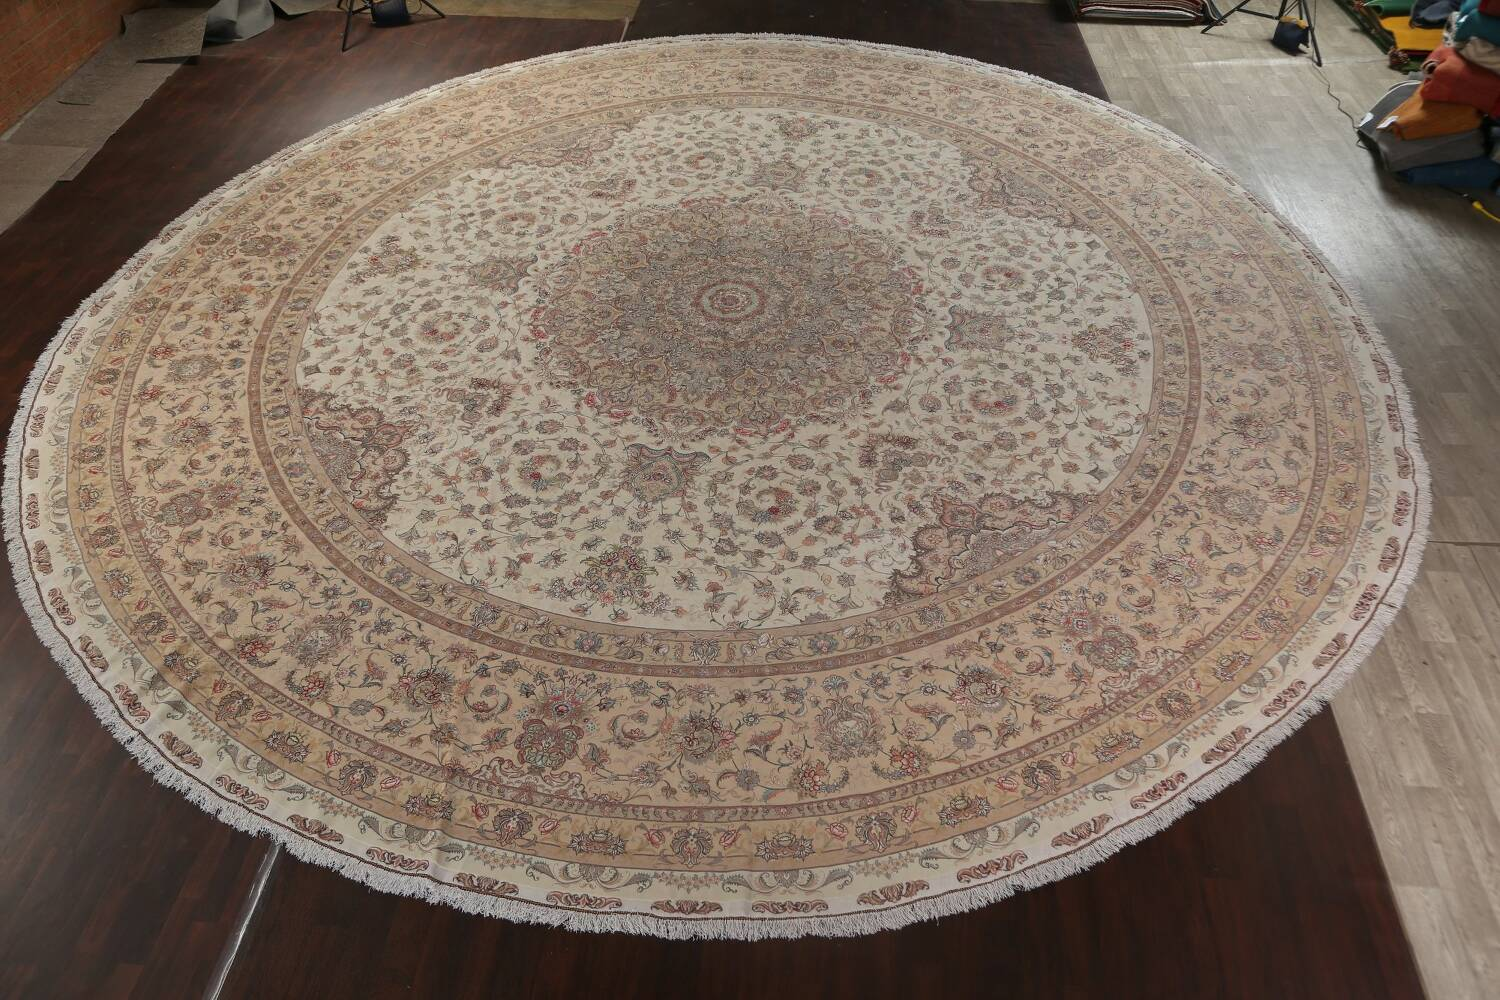 100% Vegetable Dye Floral Tabriz Persian Area Rug 22x23 Round image 23